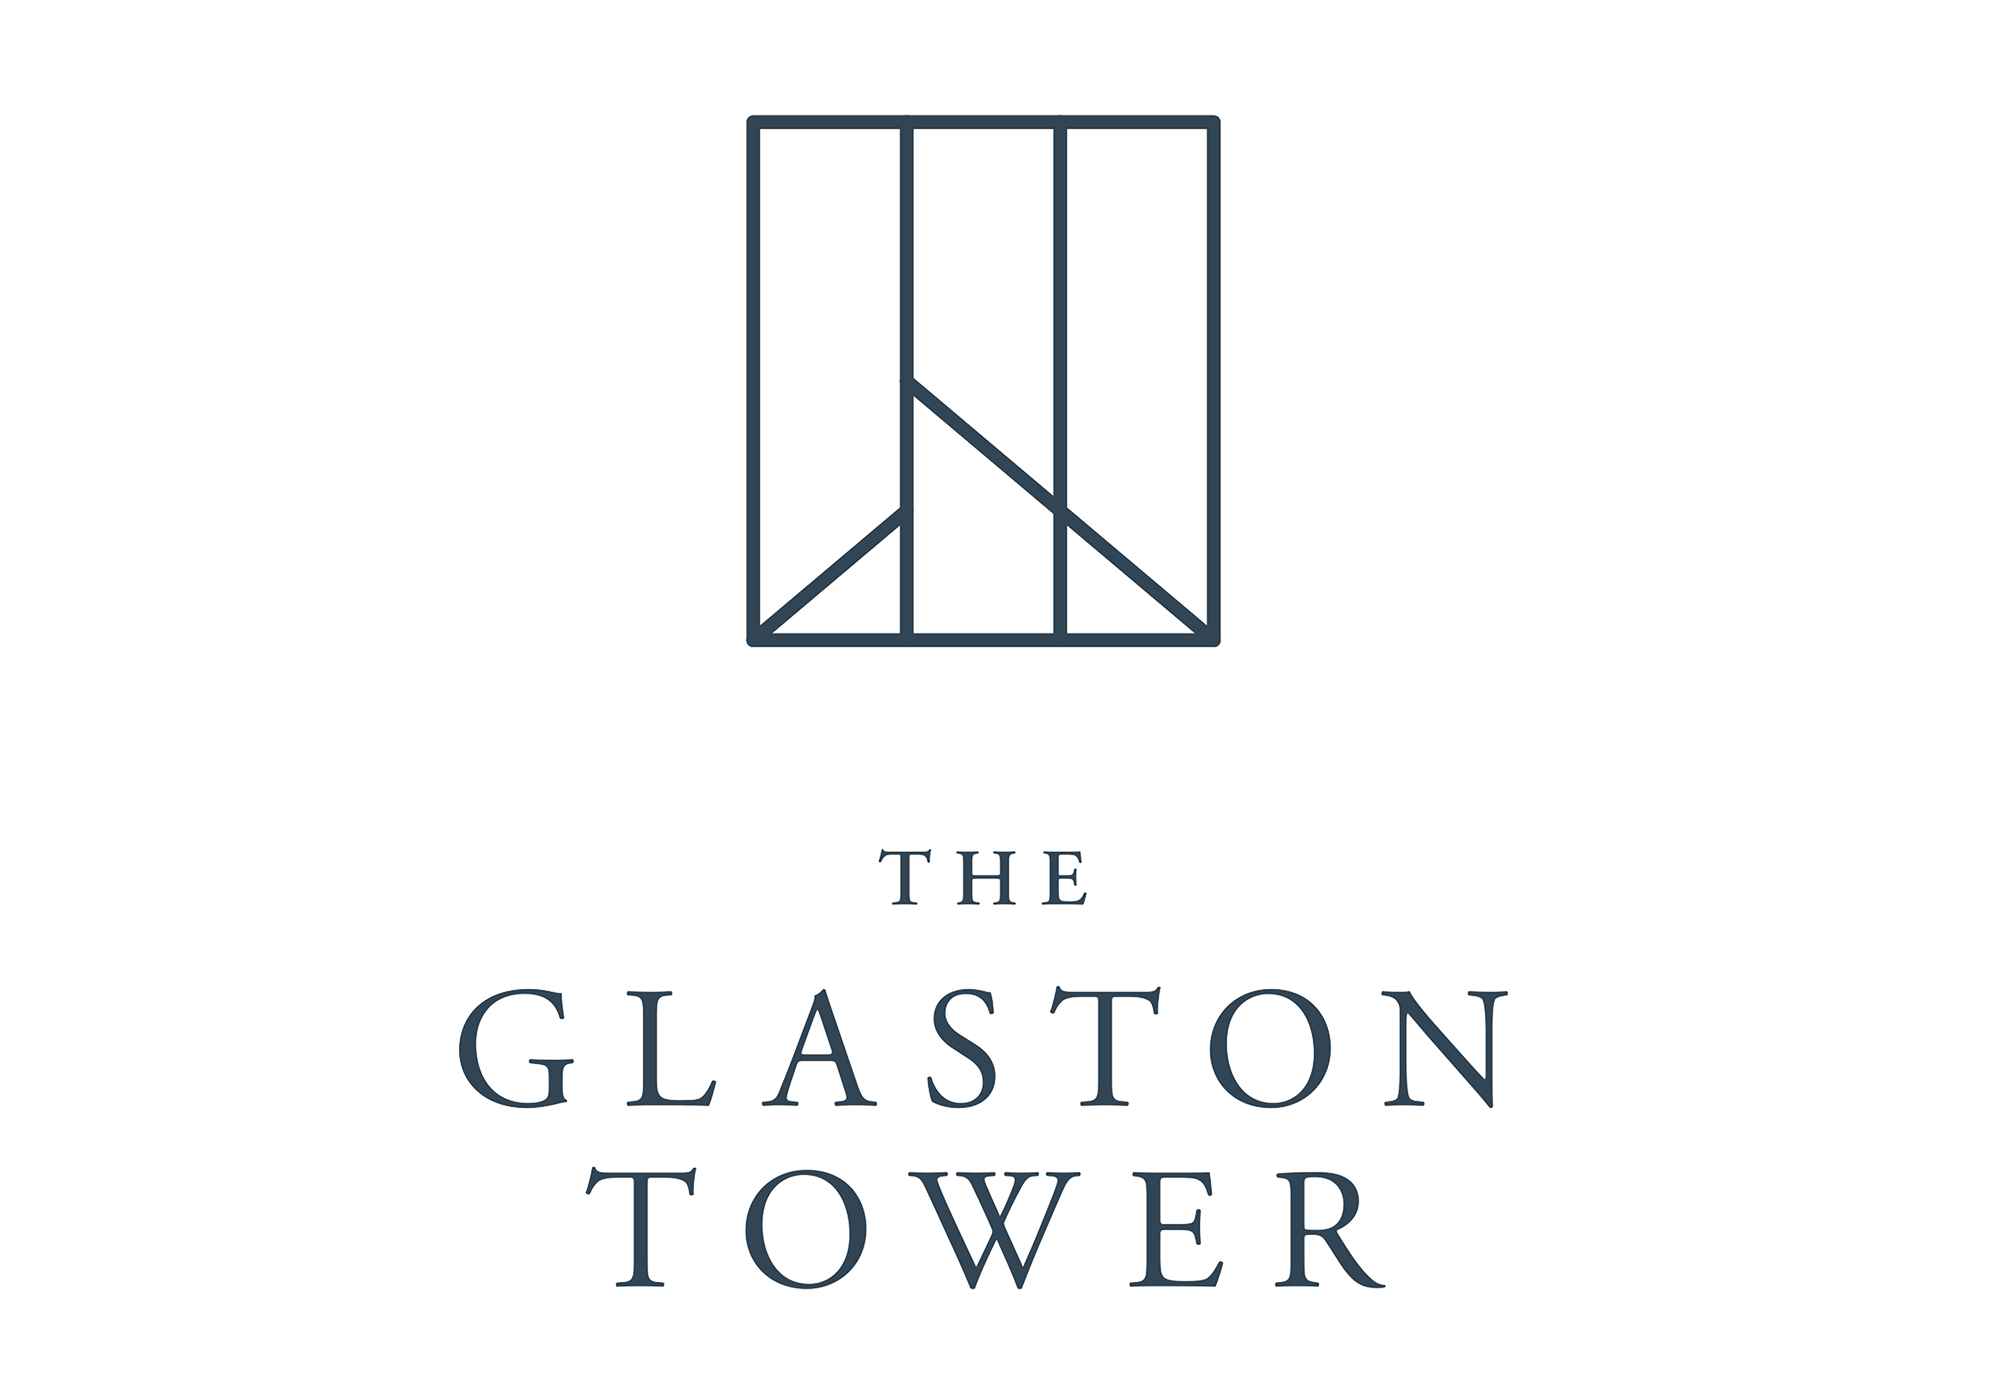 Logo of The Glaston Tower at Ortigas East